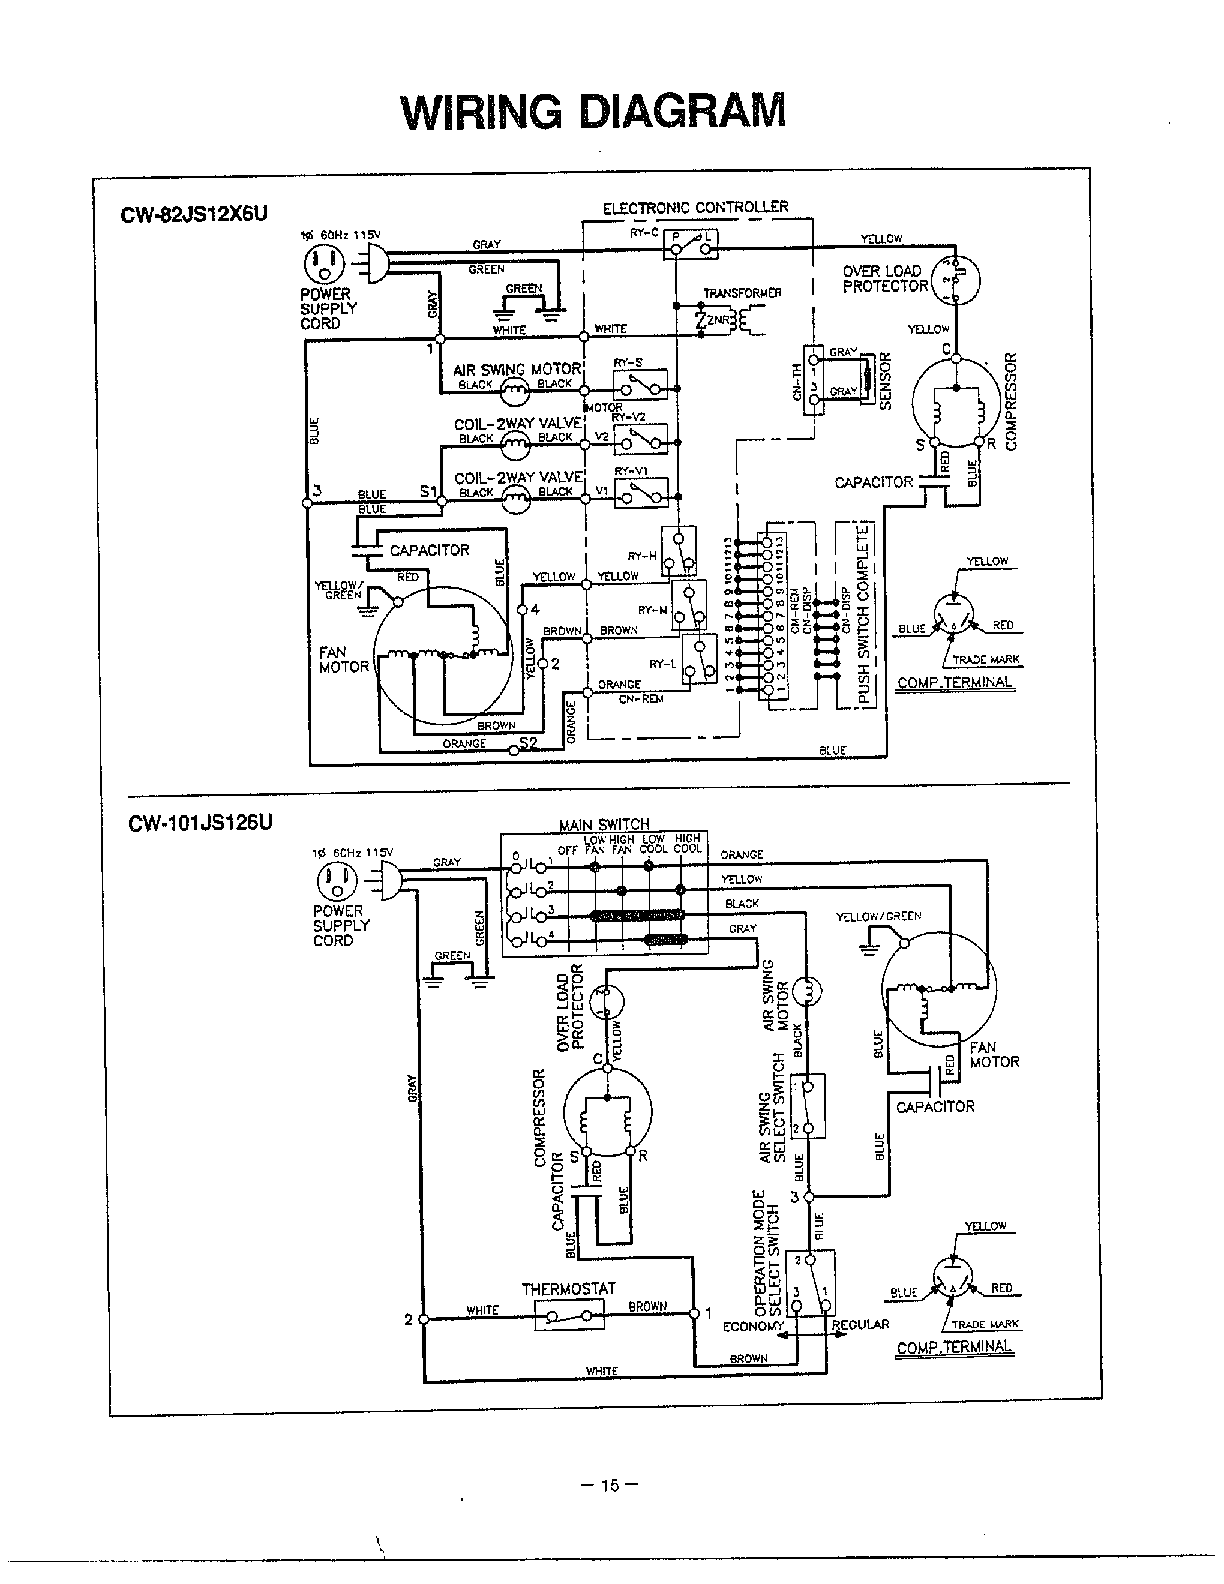 mc400 solenoid wiring diagram ezgo gas workhorse wiring diagrams rh loridyan com [ 1224 x 1584 Pixel ]